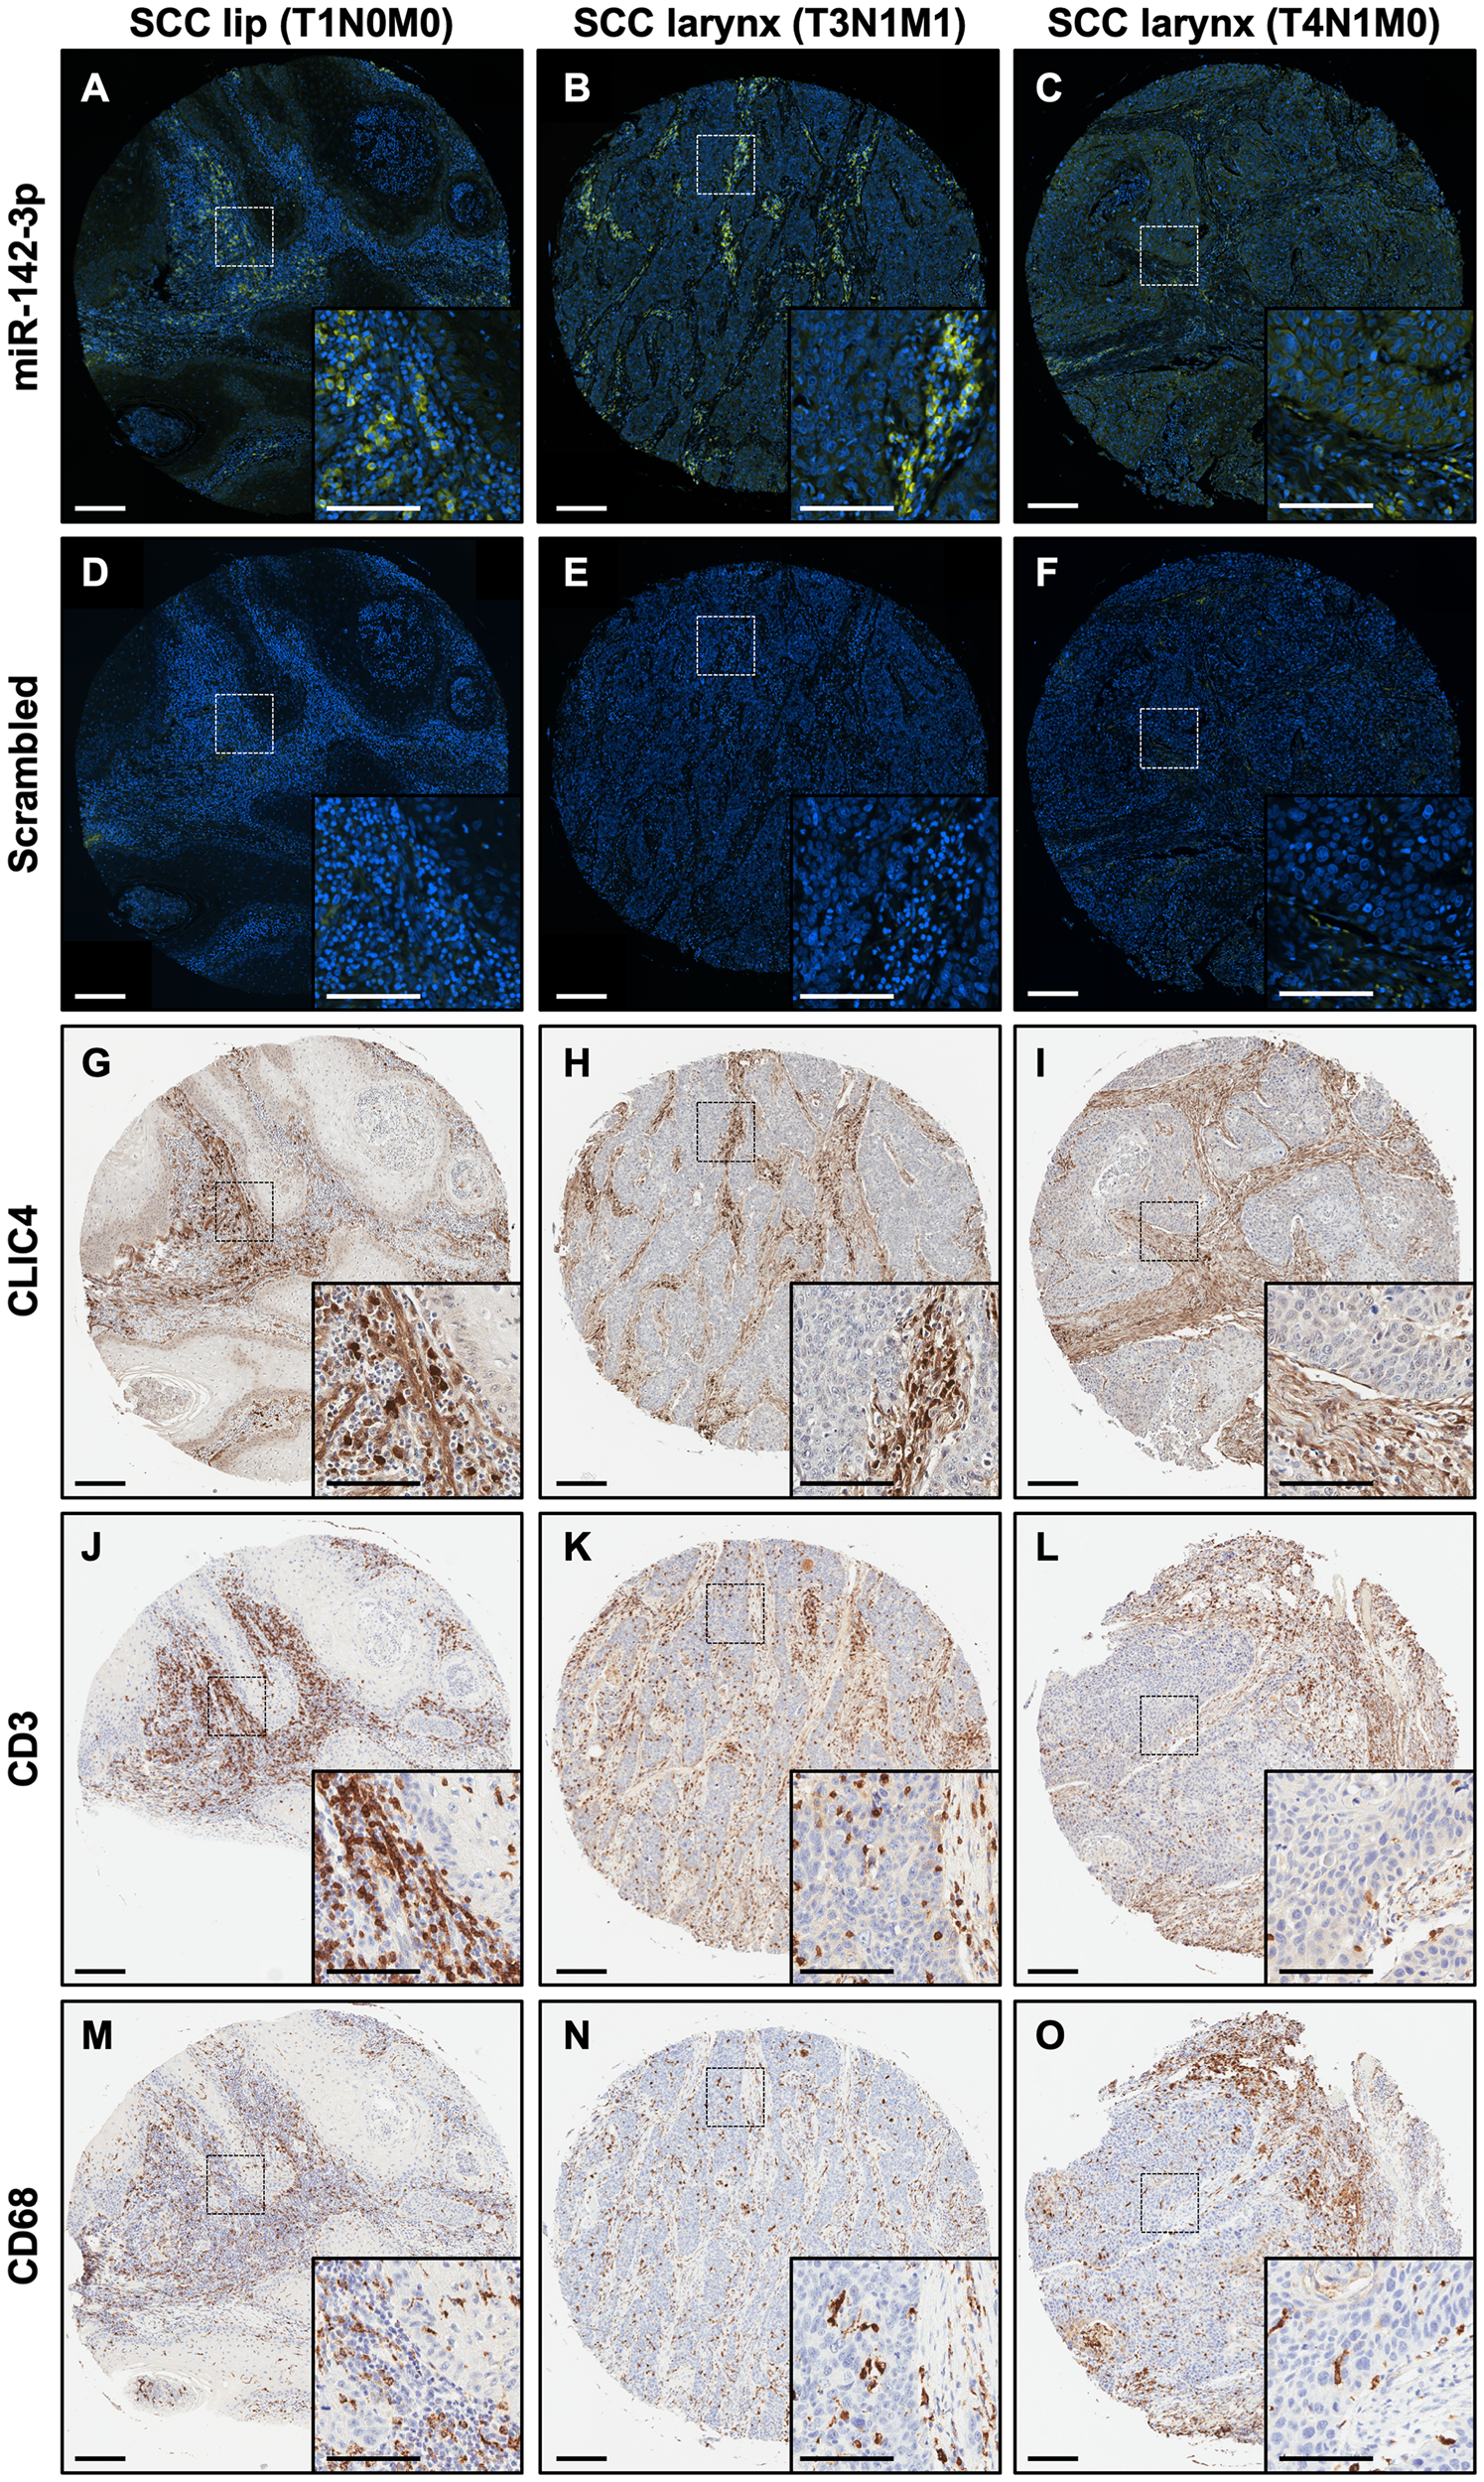 miR-142-3p is expressed in the stromal compartment along with immune cells in HNSCC.